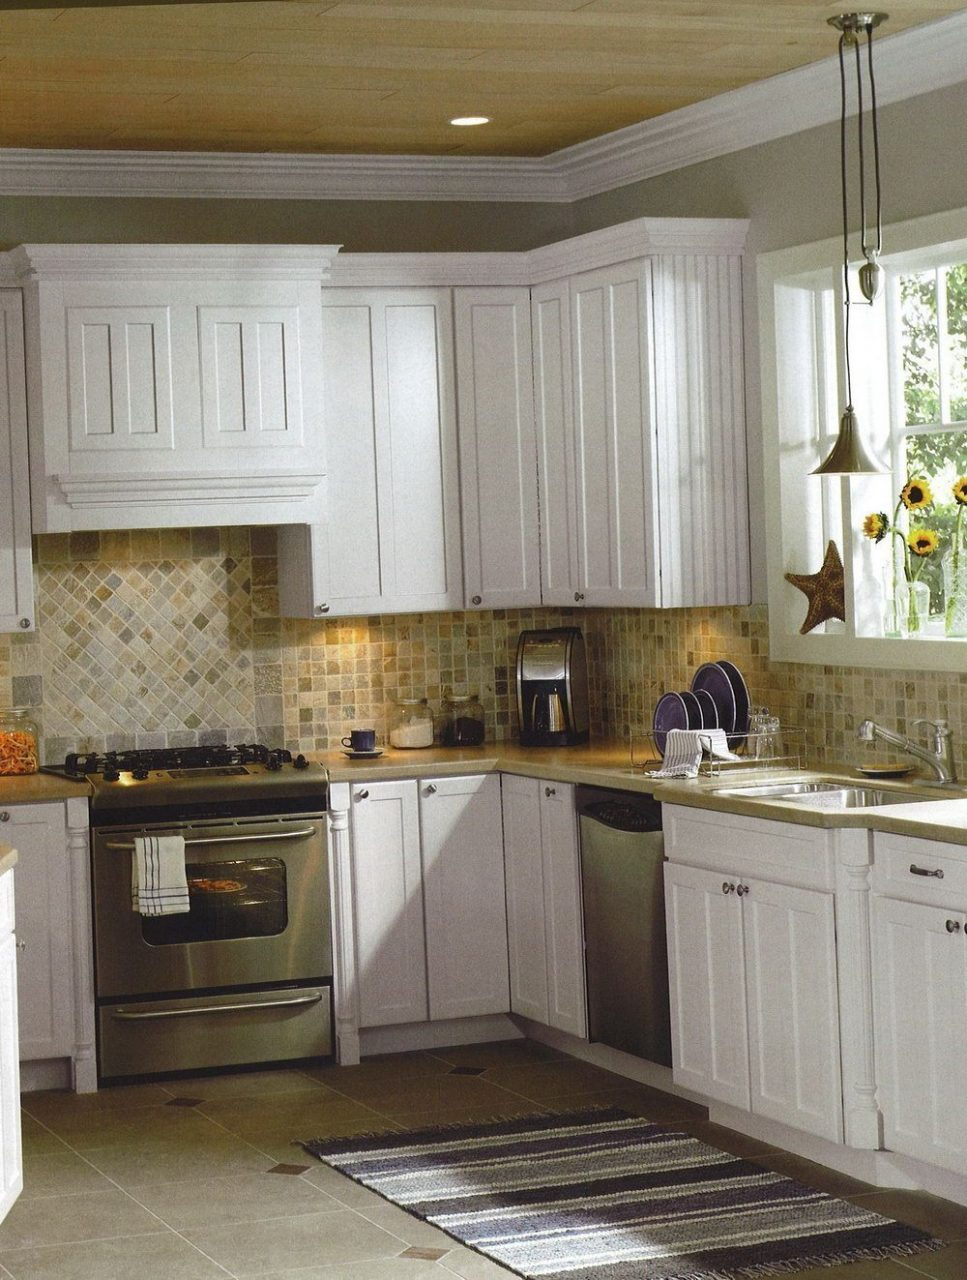 Unique Small Kitchen Backsplash Ideas Designs Travertine Whitele